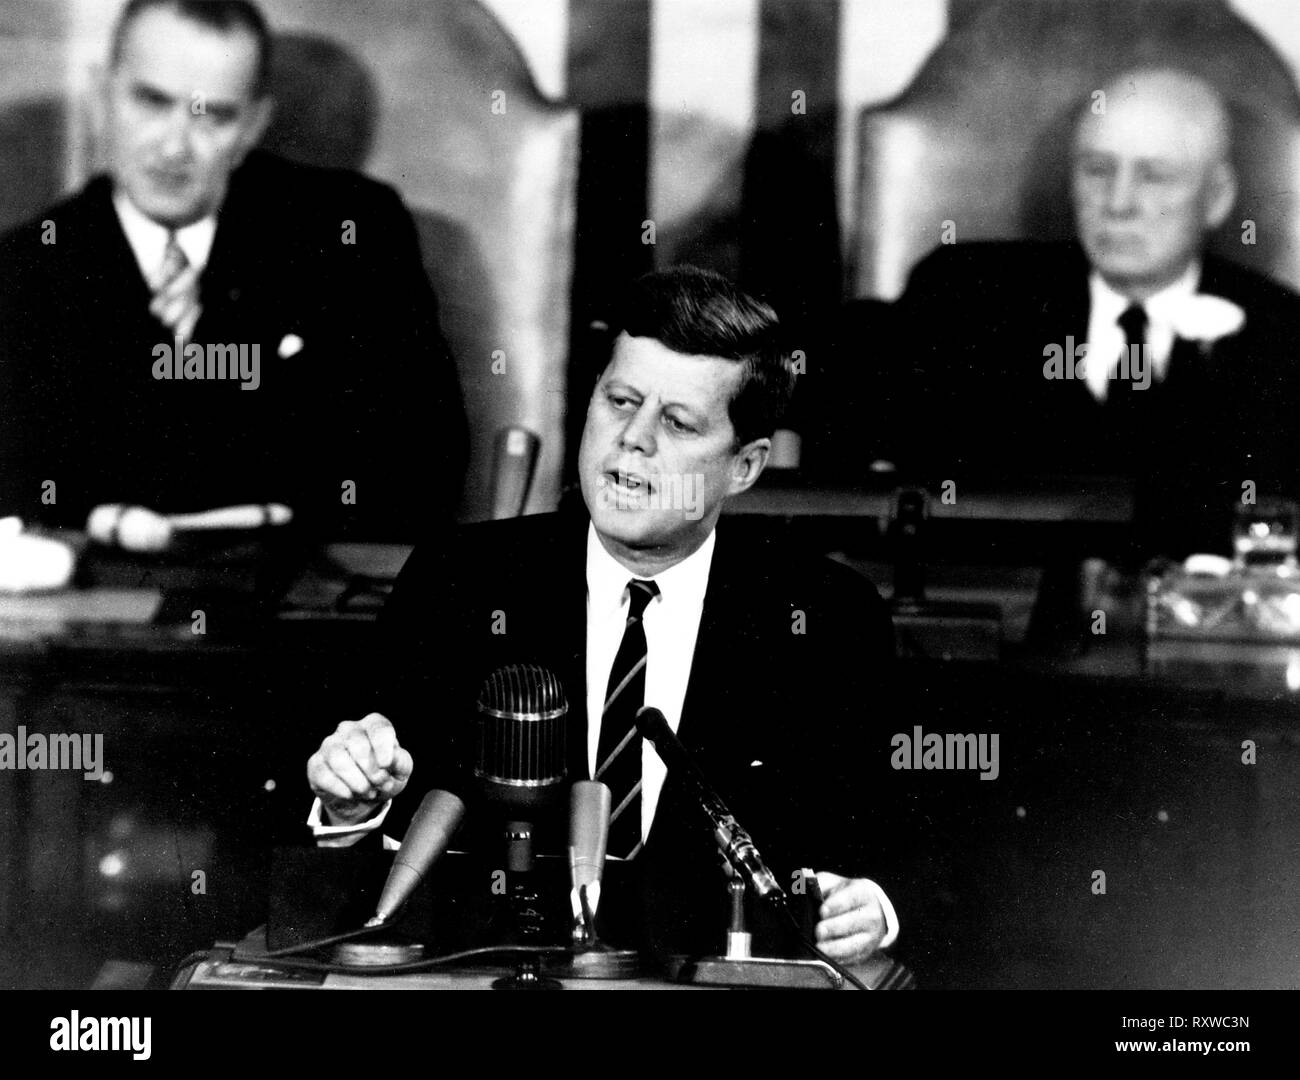 President John F. Kennedy in his historic message to a joint session of the Congress, on May 25, 1961 declared, '...I believe this nation should commit itself to achieving the goal, before this decade is out, of landing a man on the Moon and returning him safely to the Earth.' May 25, 1961 - Stock Image